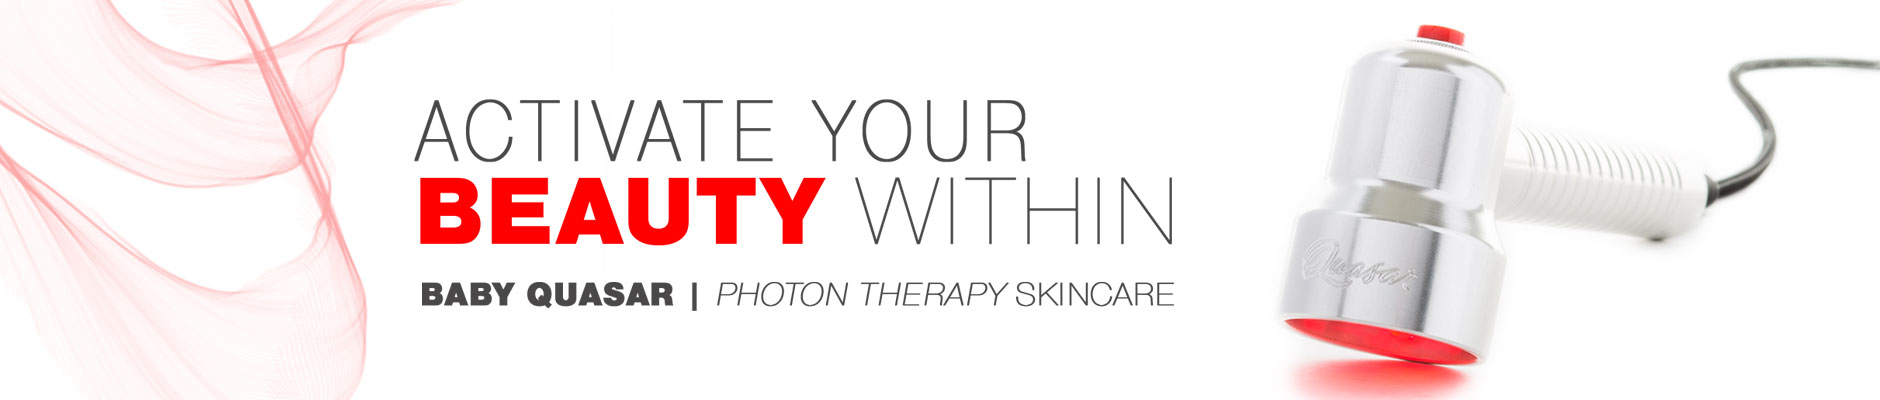 Activate Your Beauty Within - Baby Quasar - Photon Therapy Skincare